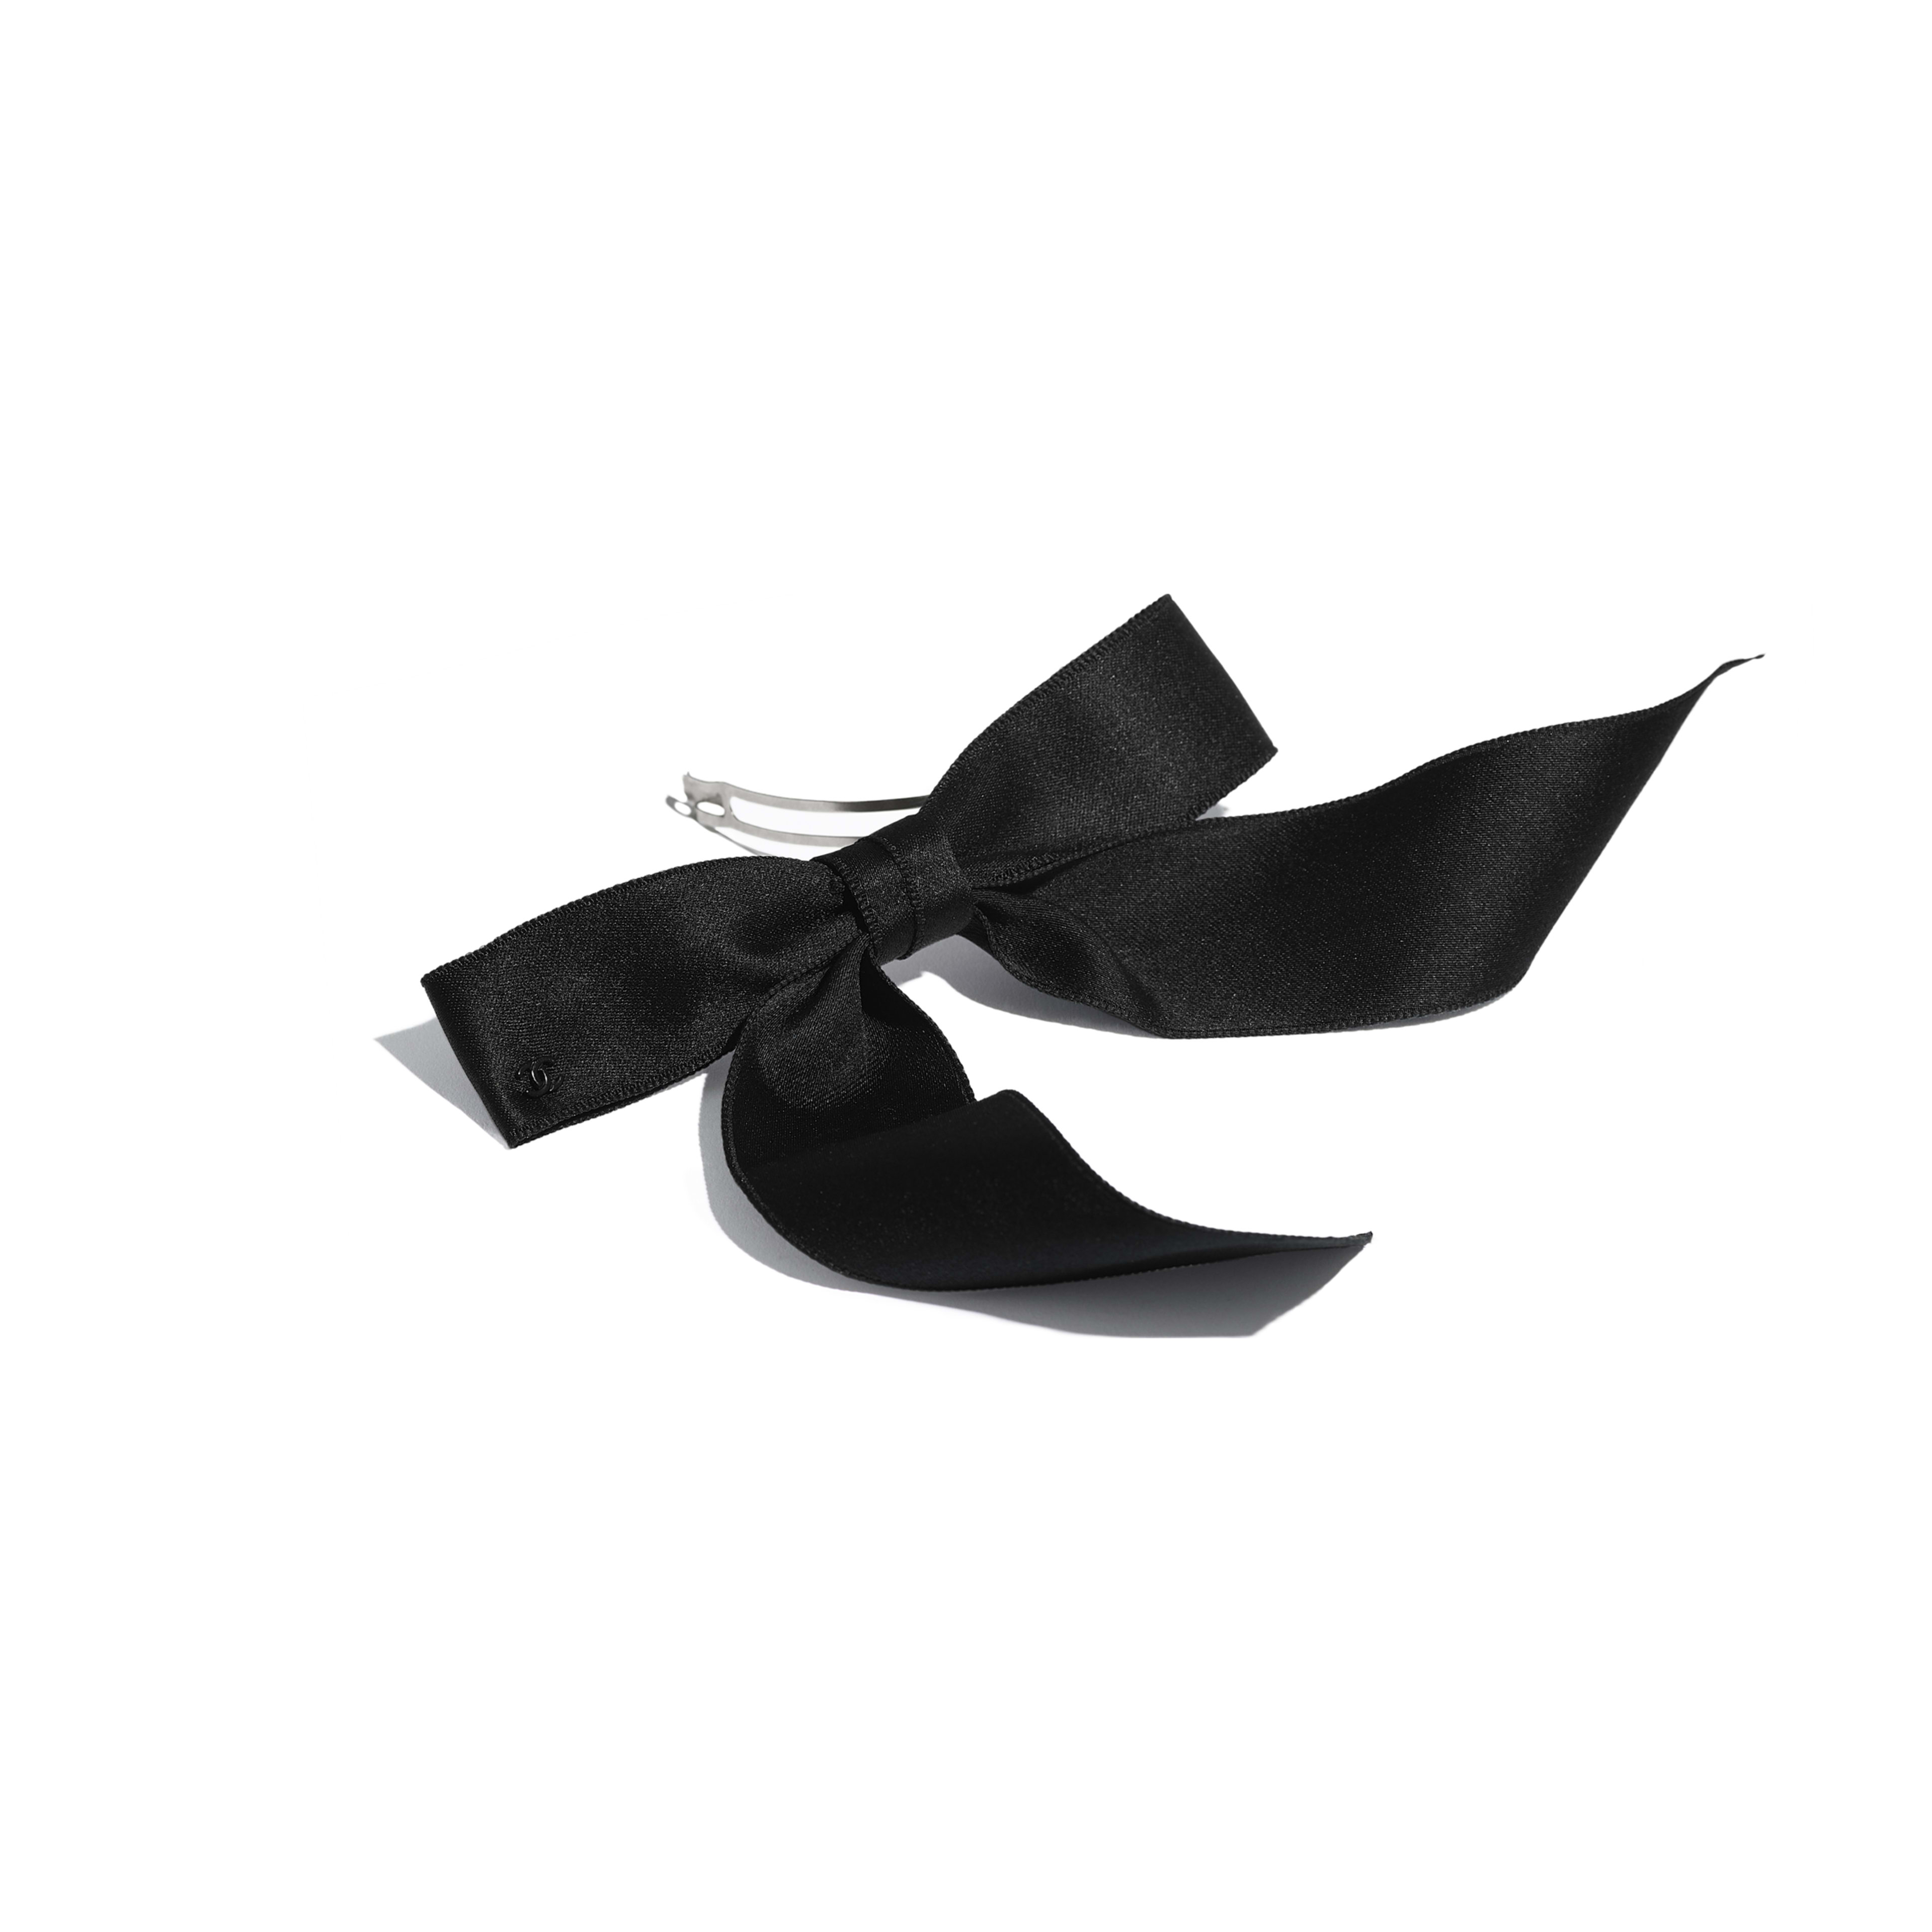 Hair Accessory - Black - Silk - Alternative view - see full sized version